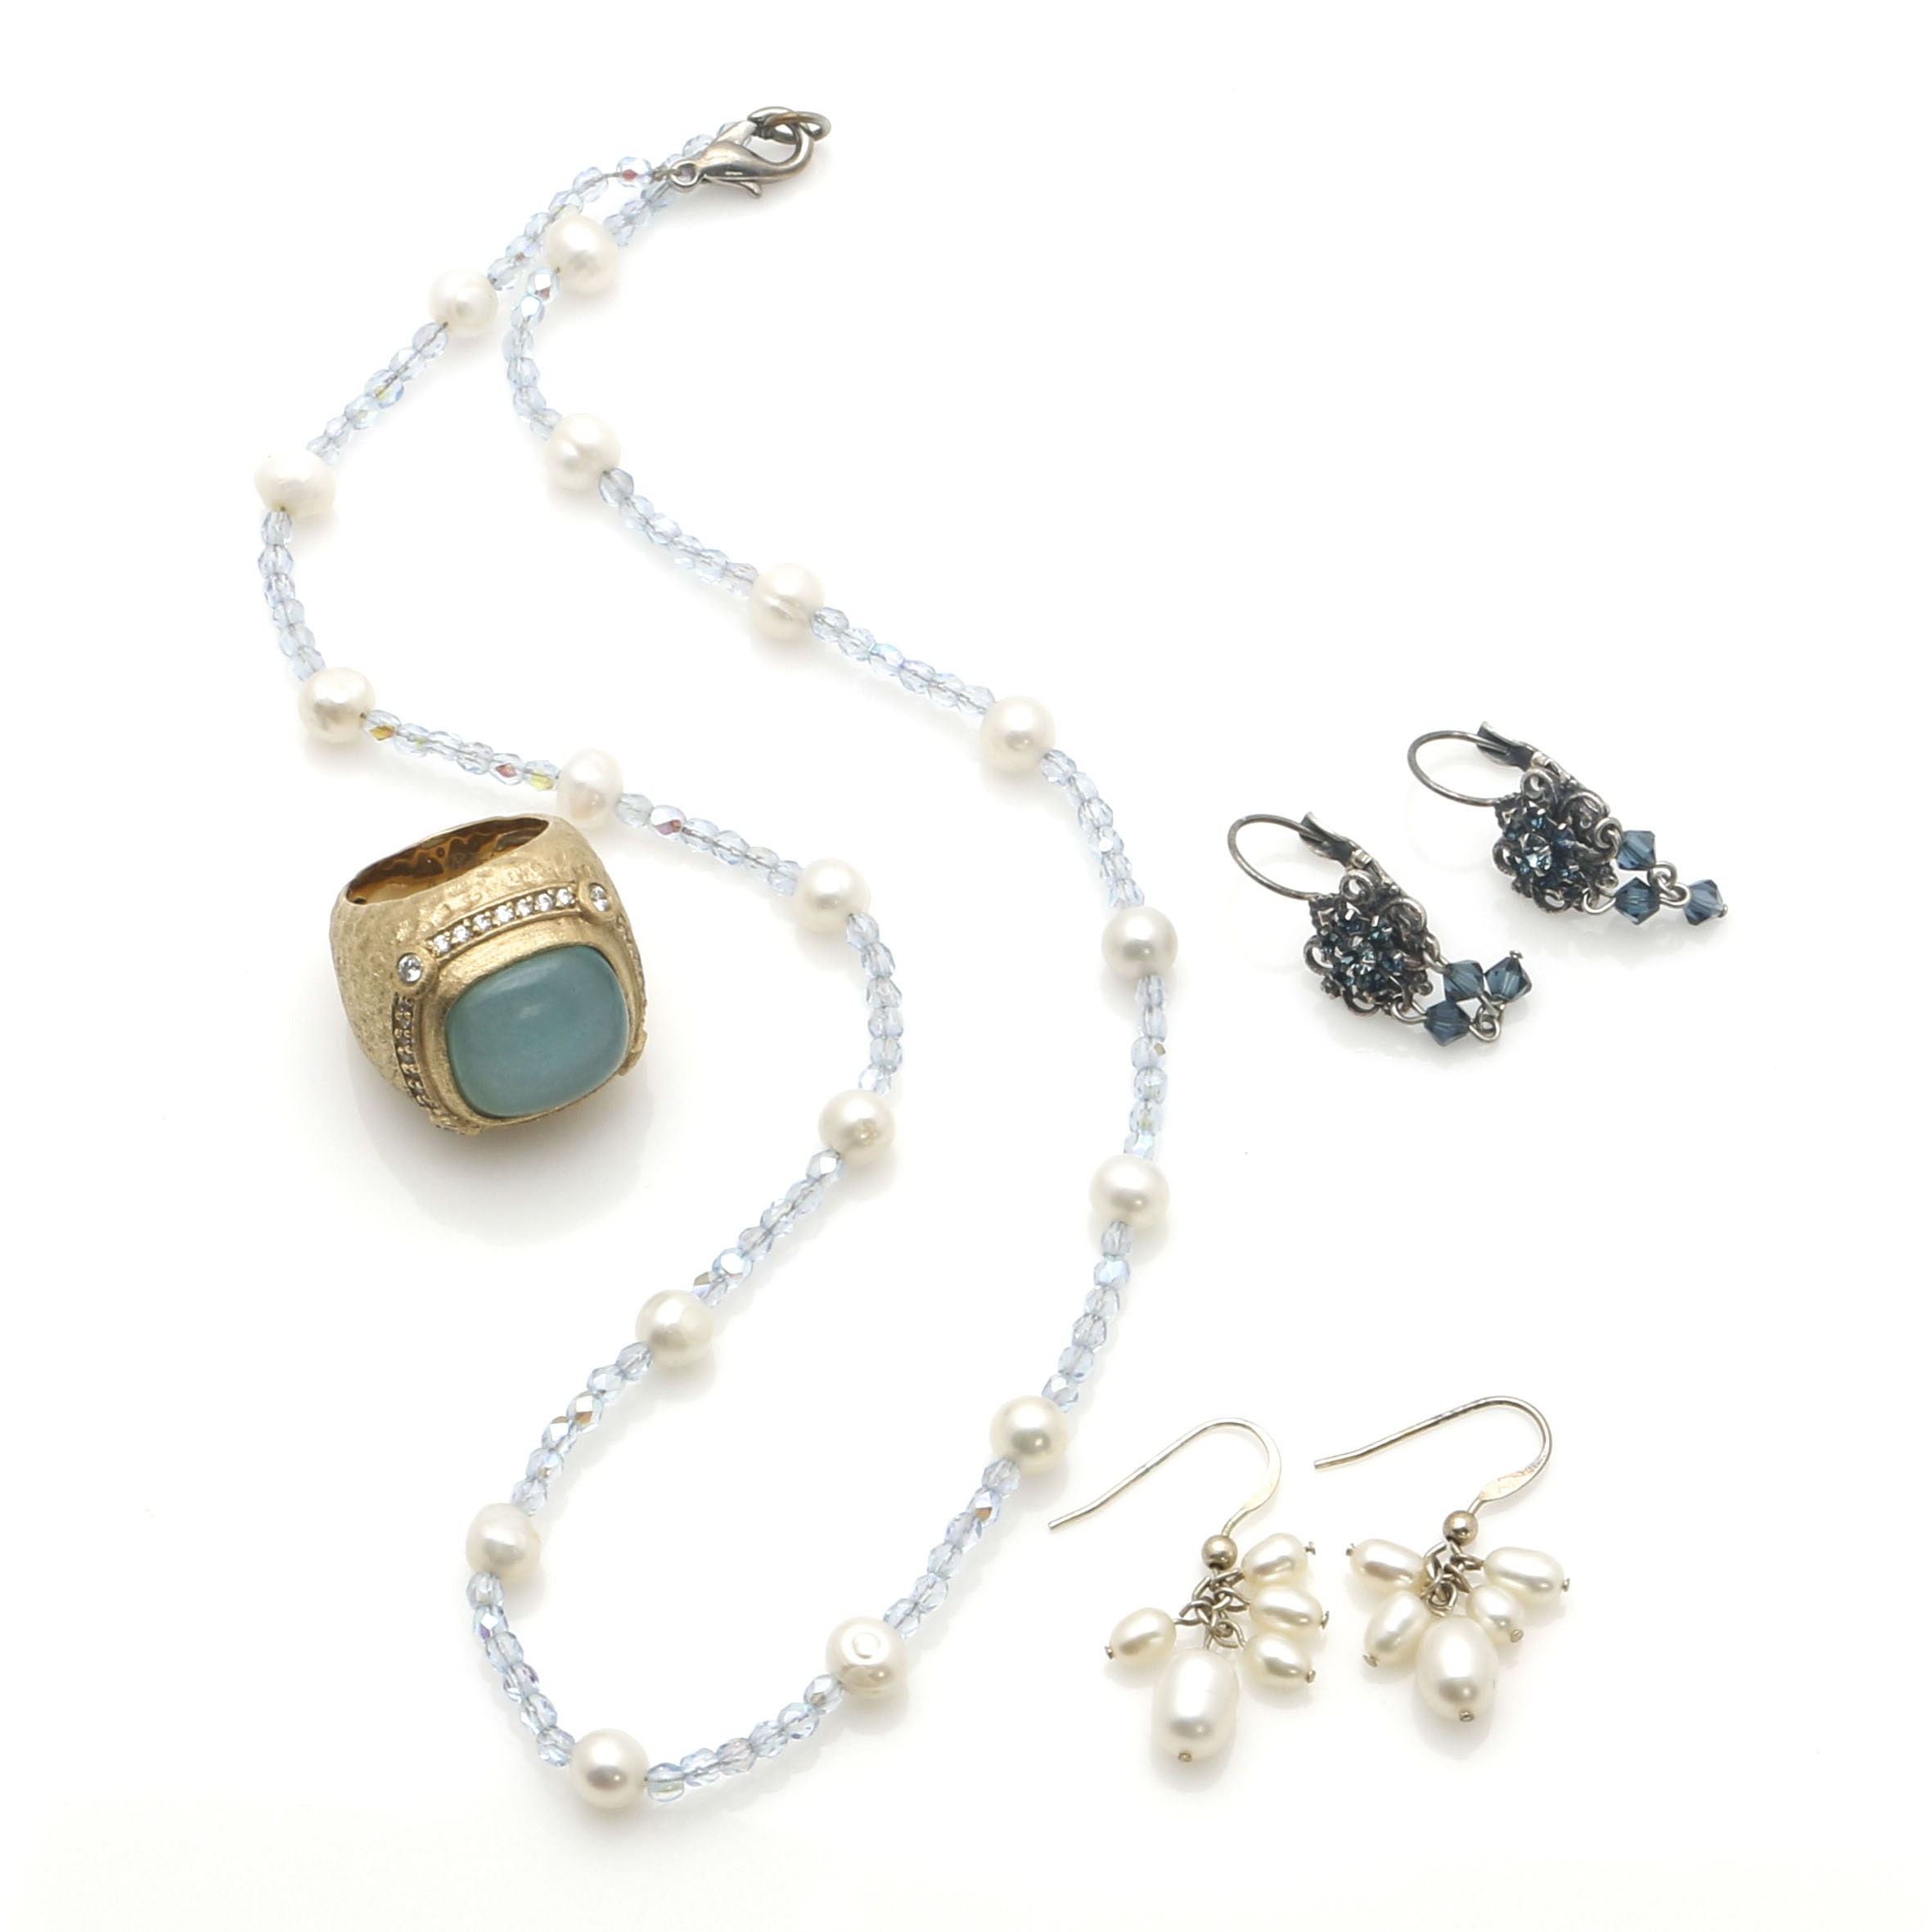 Assorted Jewelry With Gemstones and Pearls